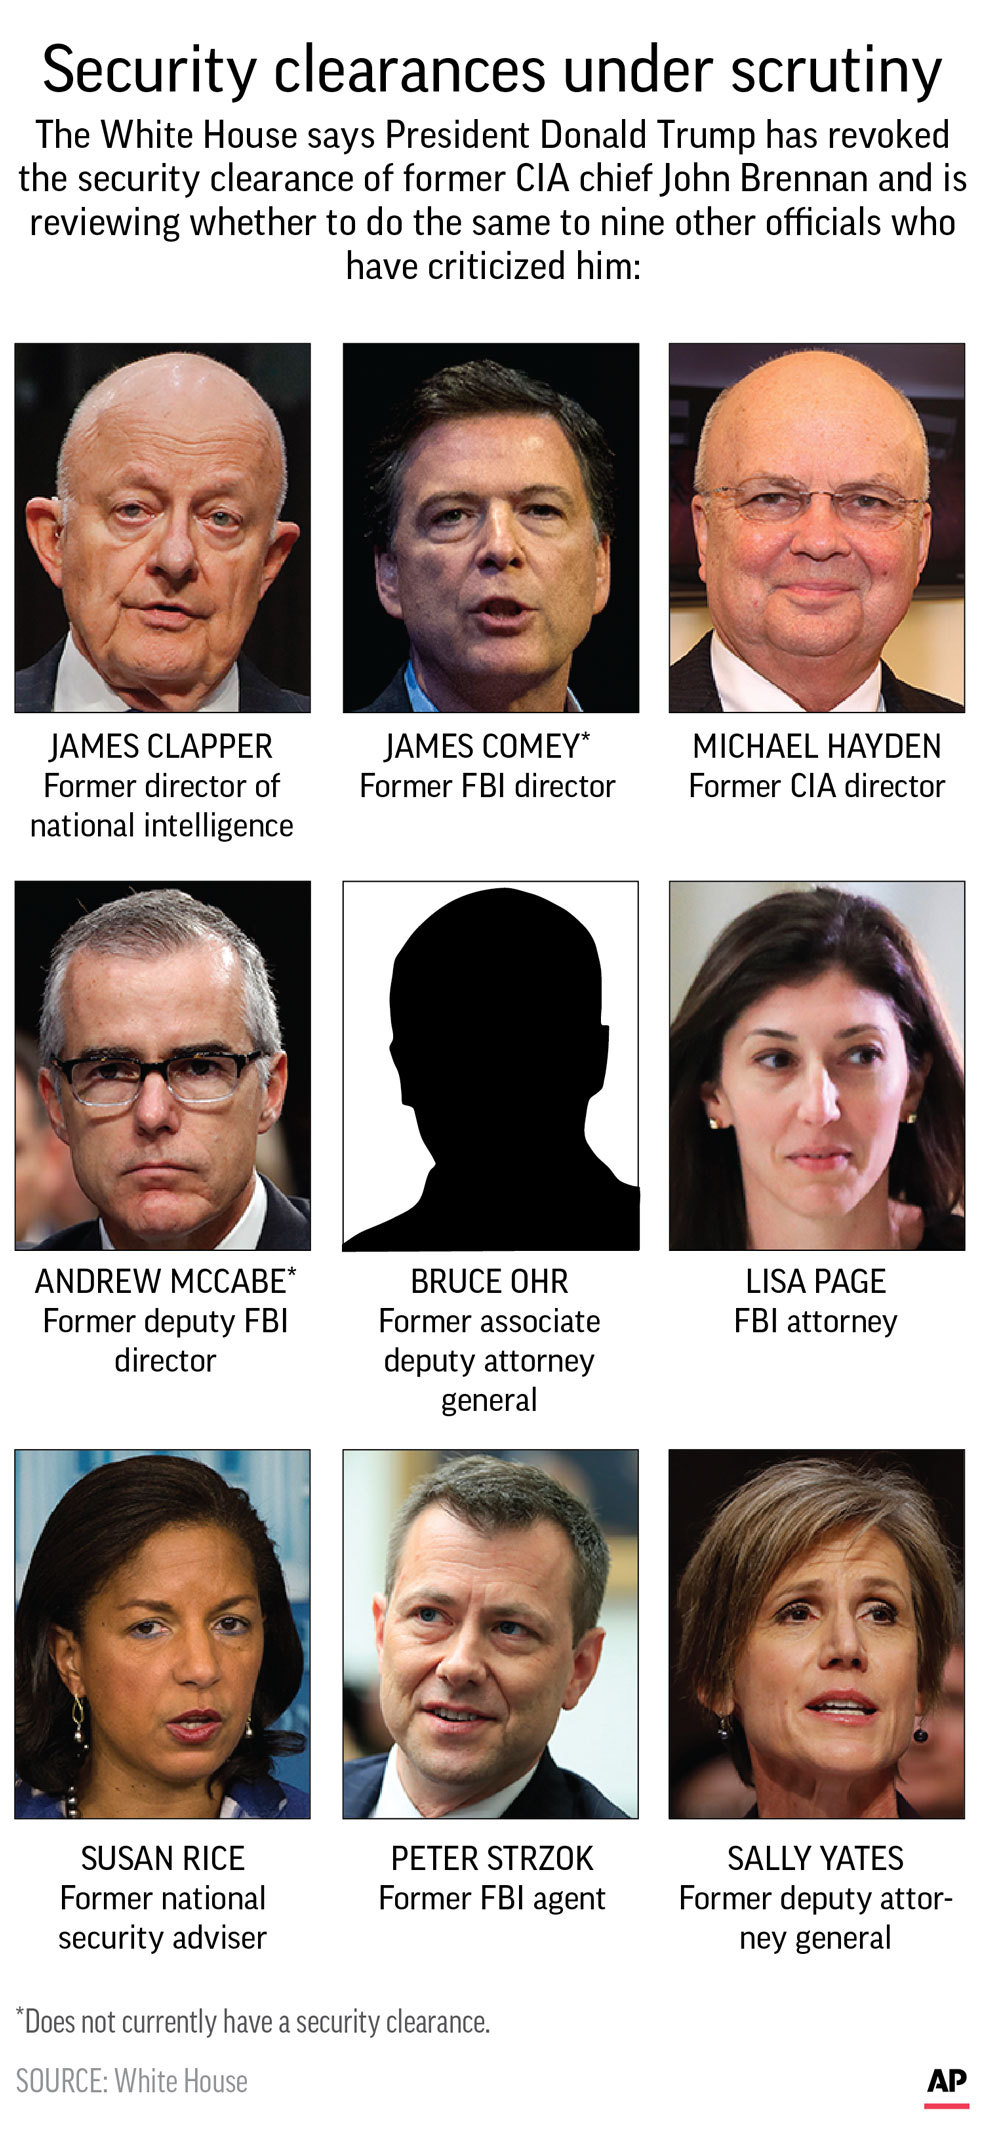 Graphic shows  individuals from whom Donald Trump is considering revoking security clearances; 2c x 7 inches; 96.3 mm x 177 mm;